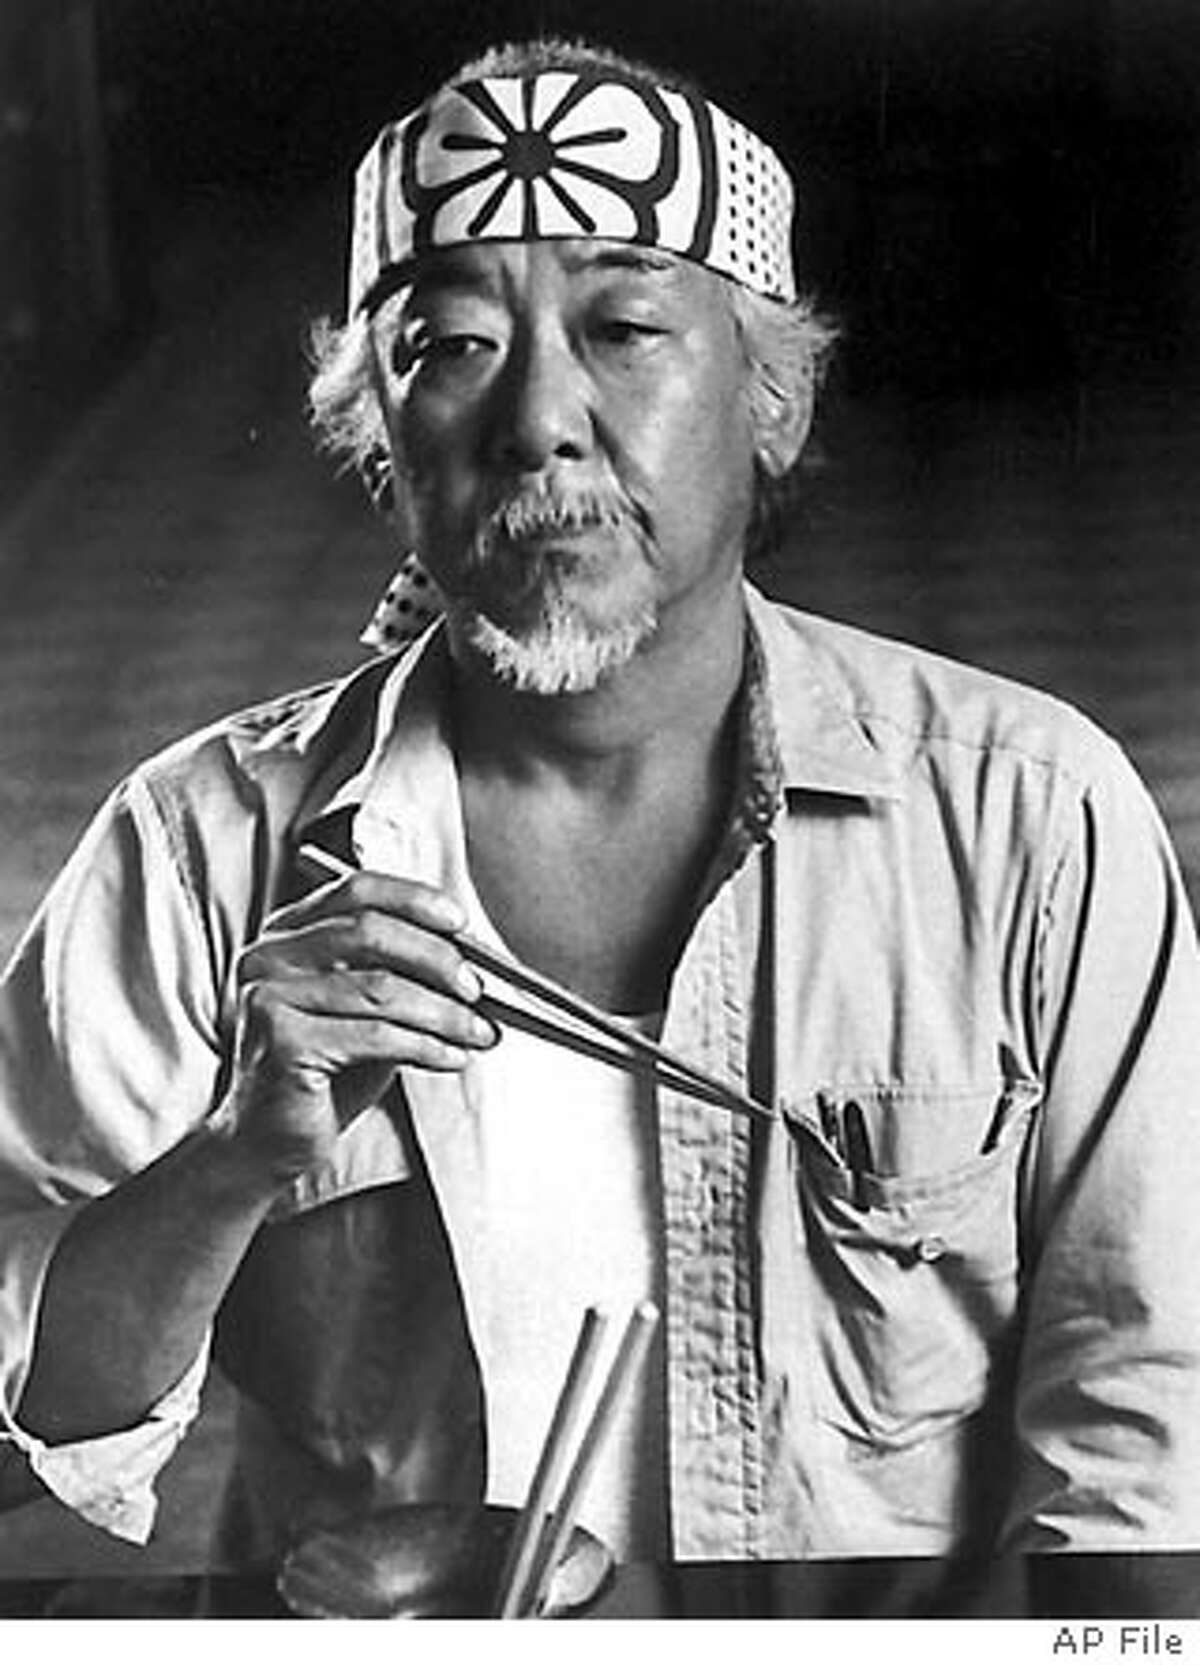 **FILE** Actor Pat Morita poses for a photo in this 1986 file photo. Morita, whose portrayal of the wise and dry-witted Mr. Miyagi in